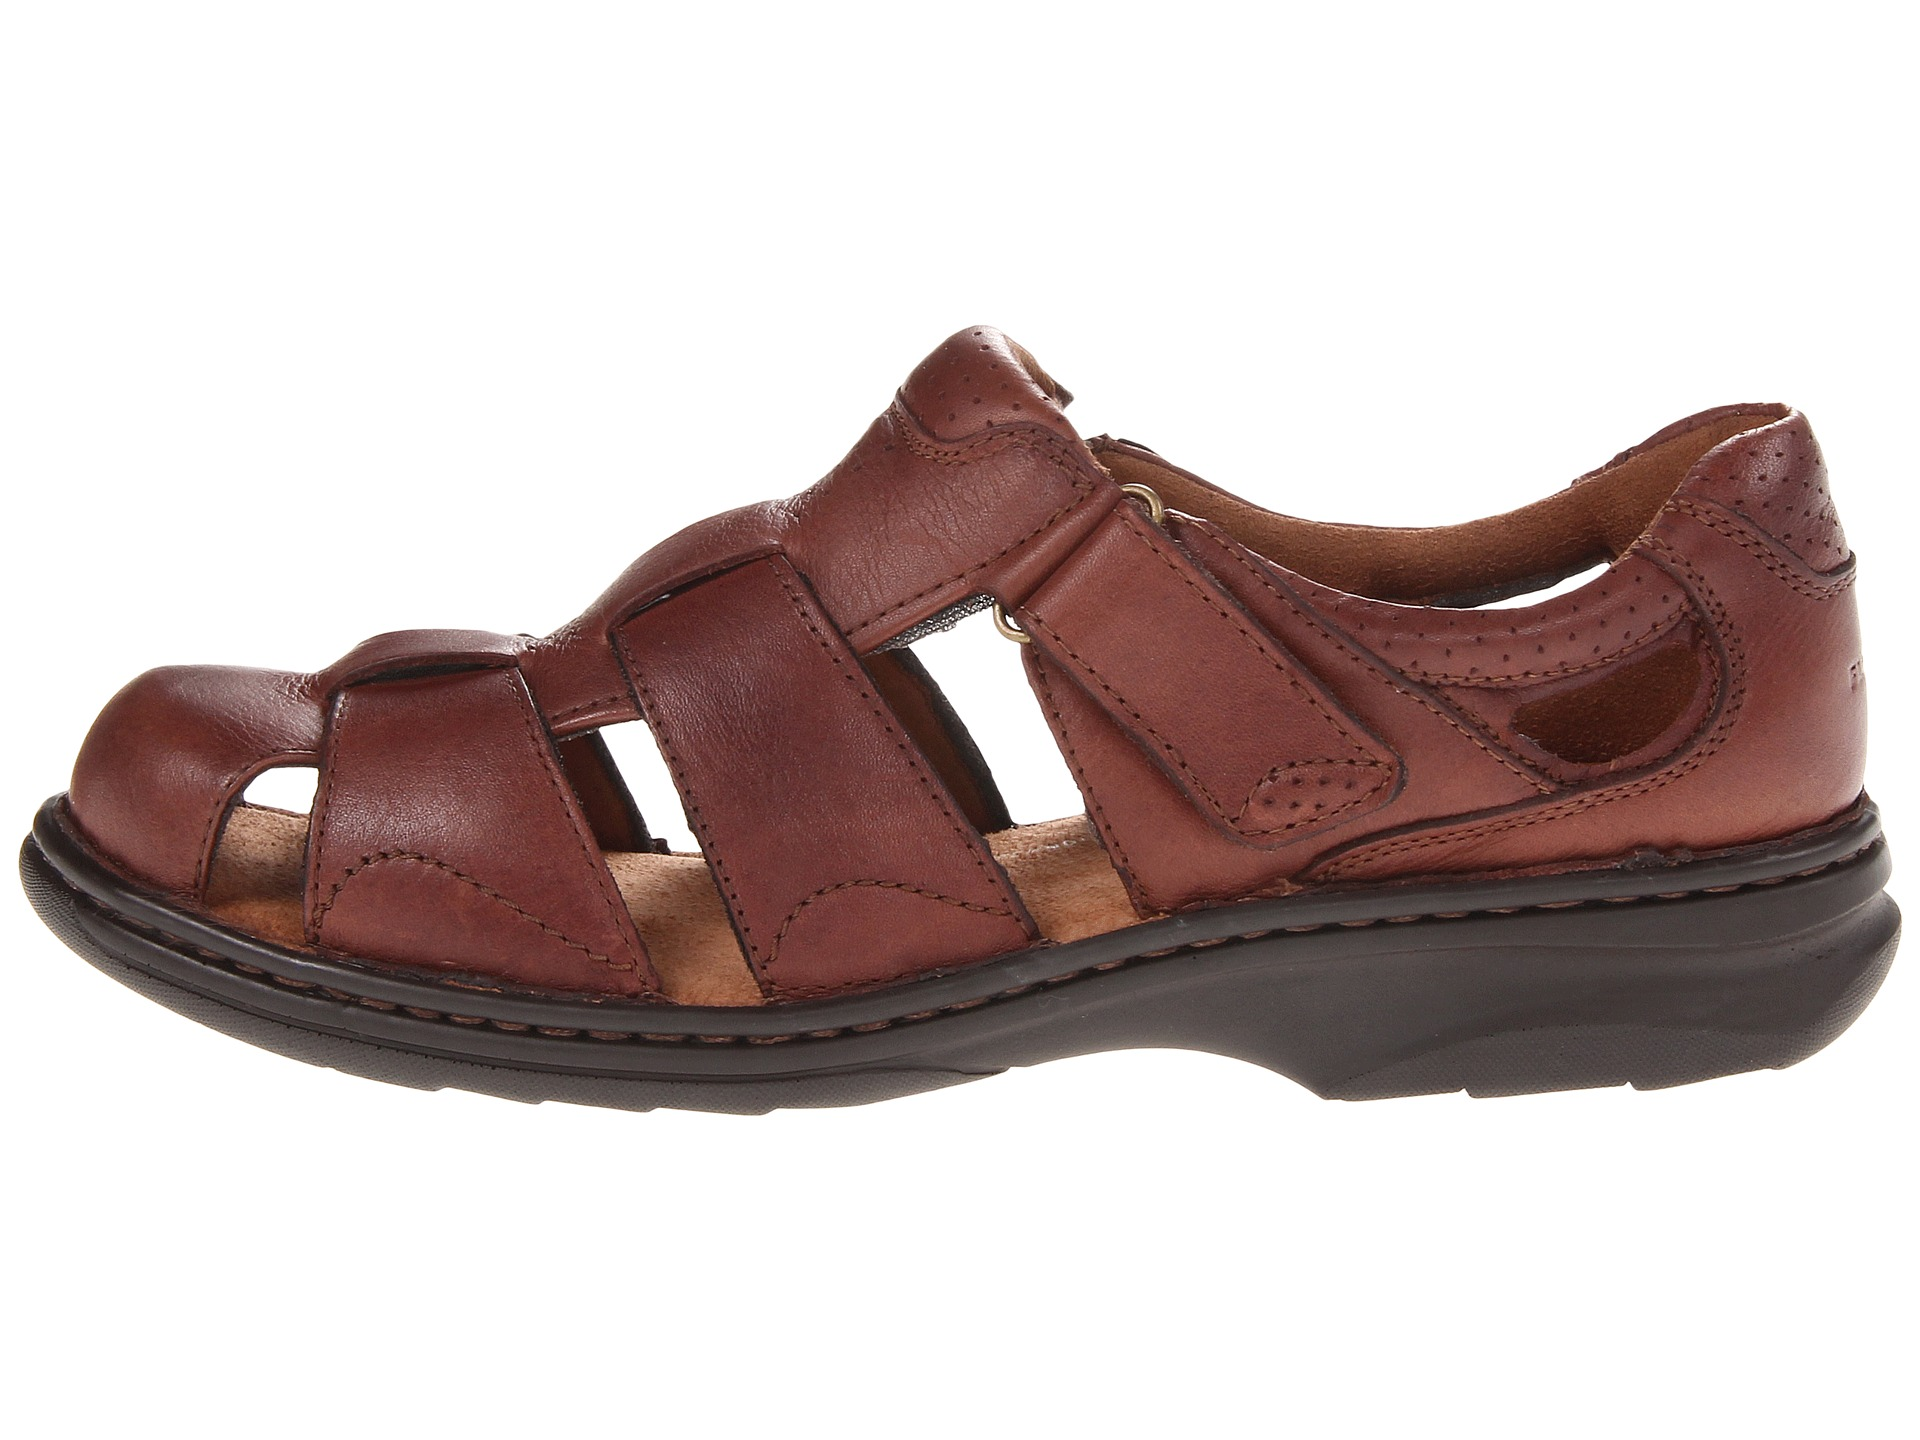 Women's Born Verena Fisherman Sandals Video - image 2 from the video